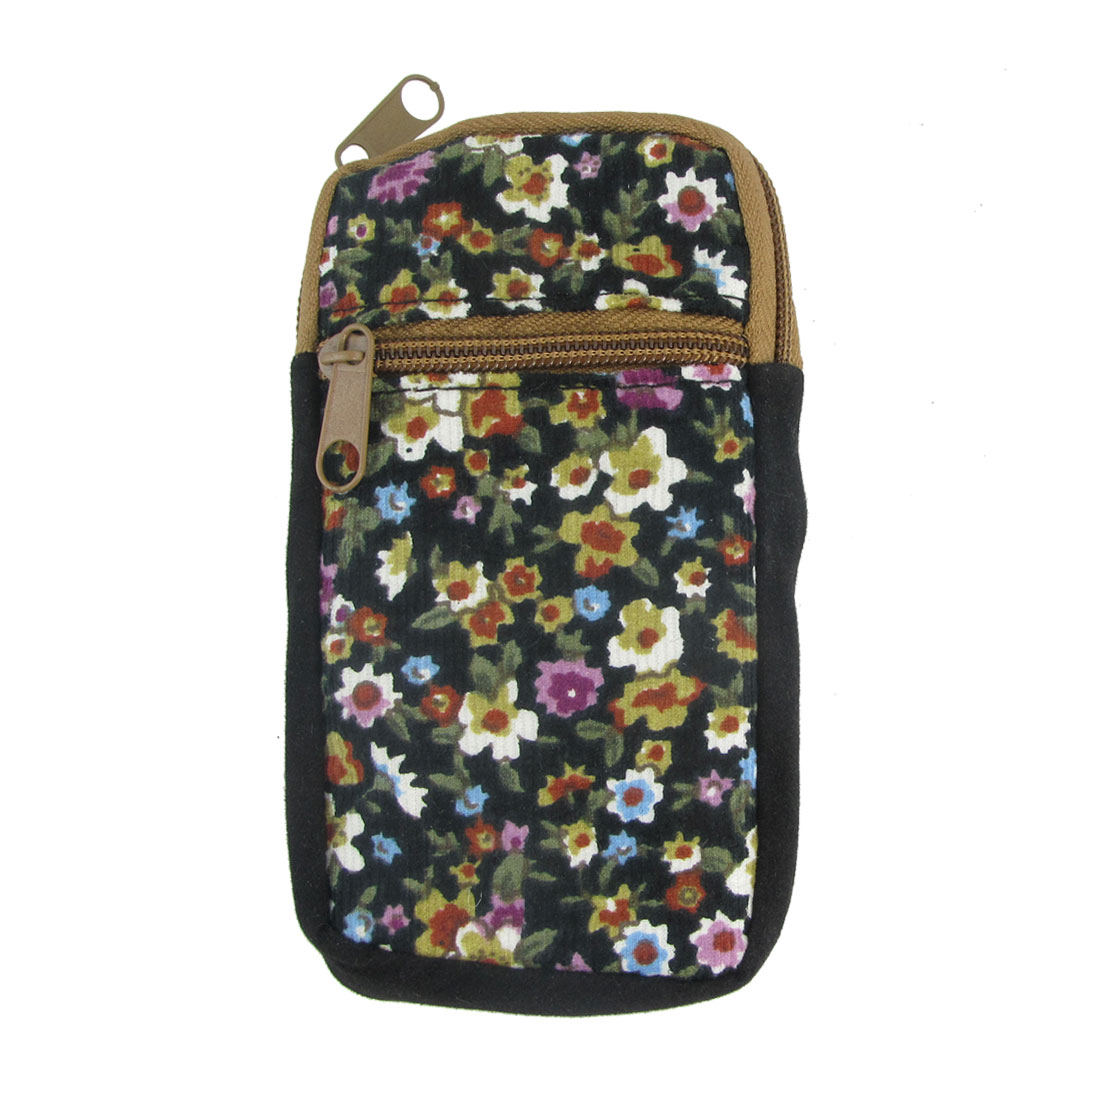 Allover Floral Pattern 2 Pocket Cellphone Key Coin Holder Wrist Bag